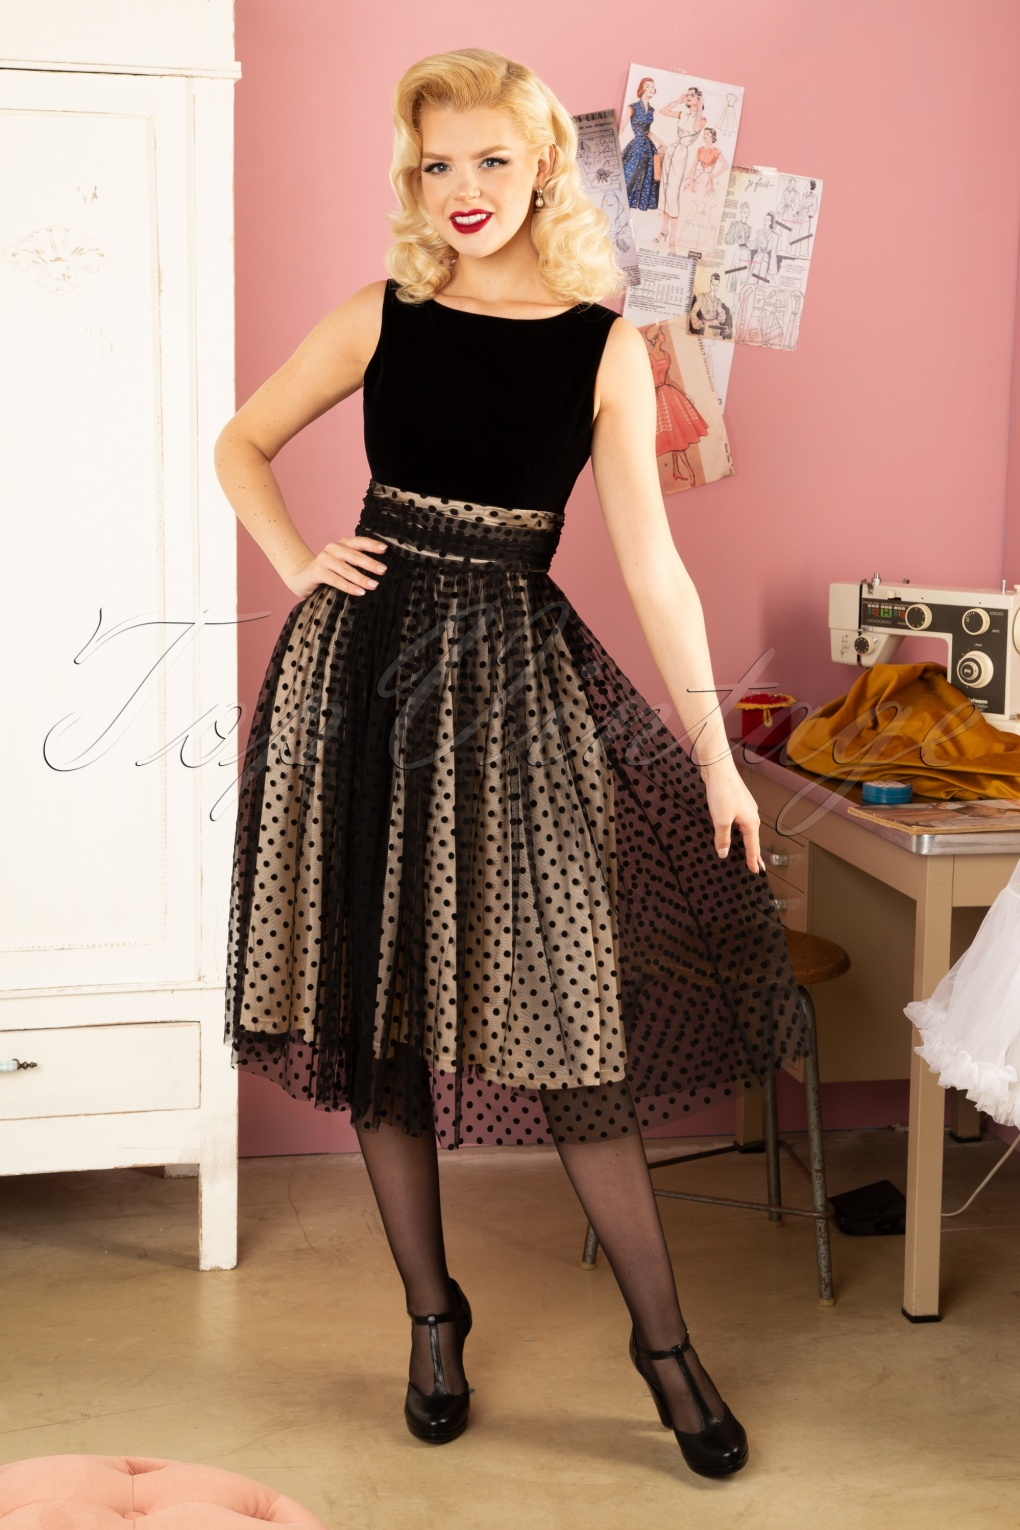 50s Dresses UK | 1950s Dresses, Shoes & Clothing Shops 50s Velvet Love Swing Dress in Black £61.31 AT vintagedancer.com